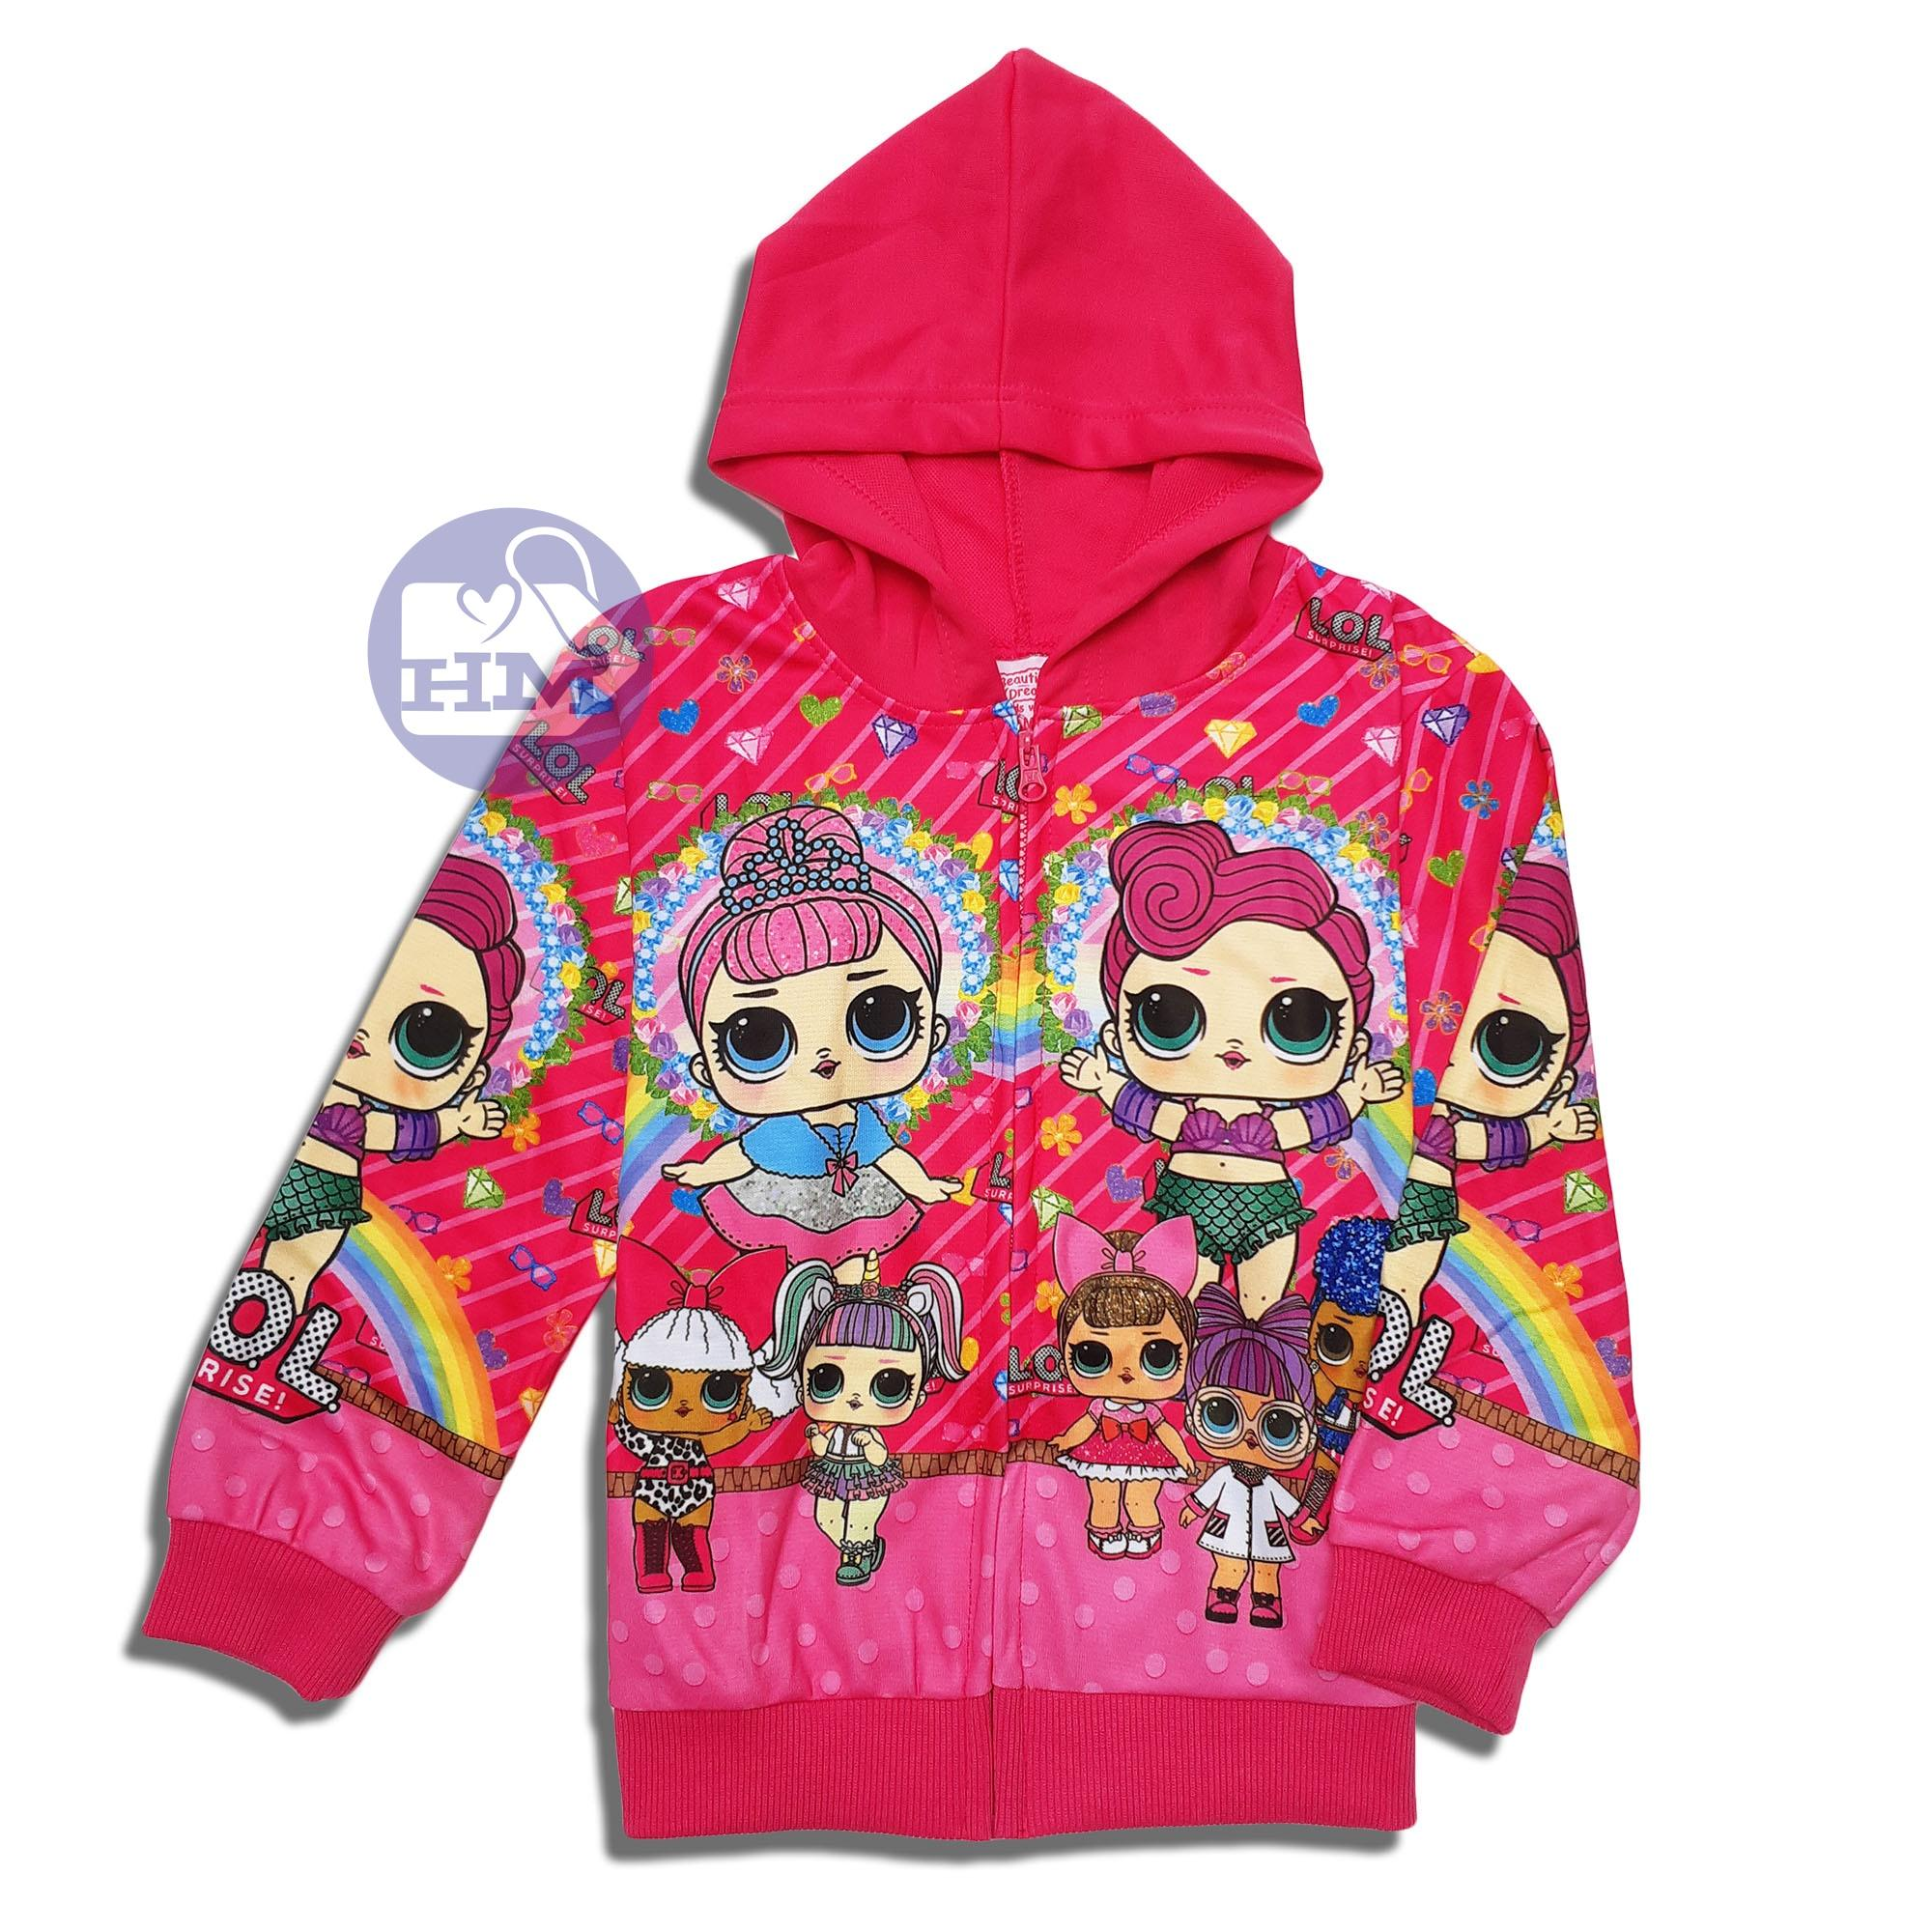 HM Jaket Anak LOL Surprise Jaket Anak Trendy 1e08804214